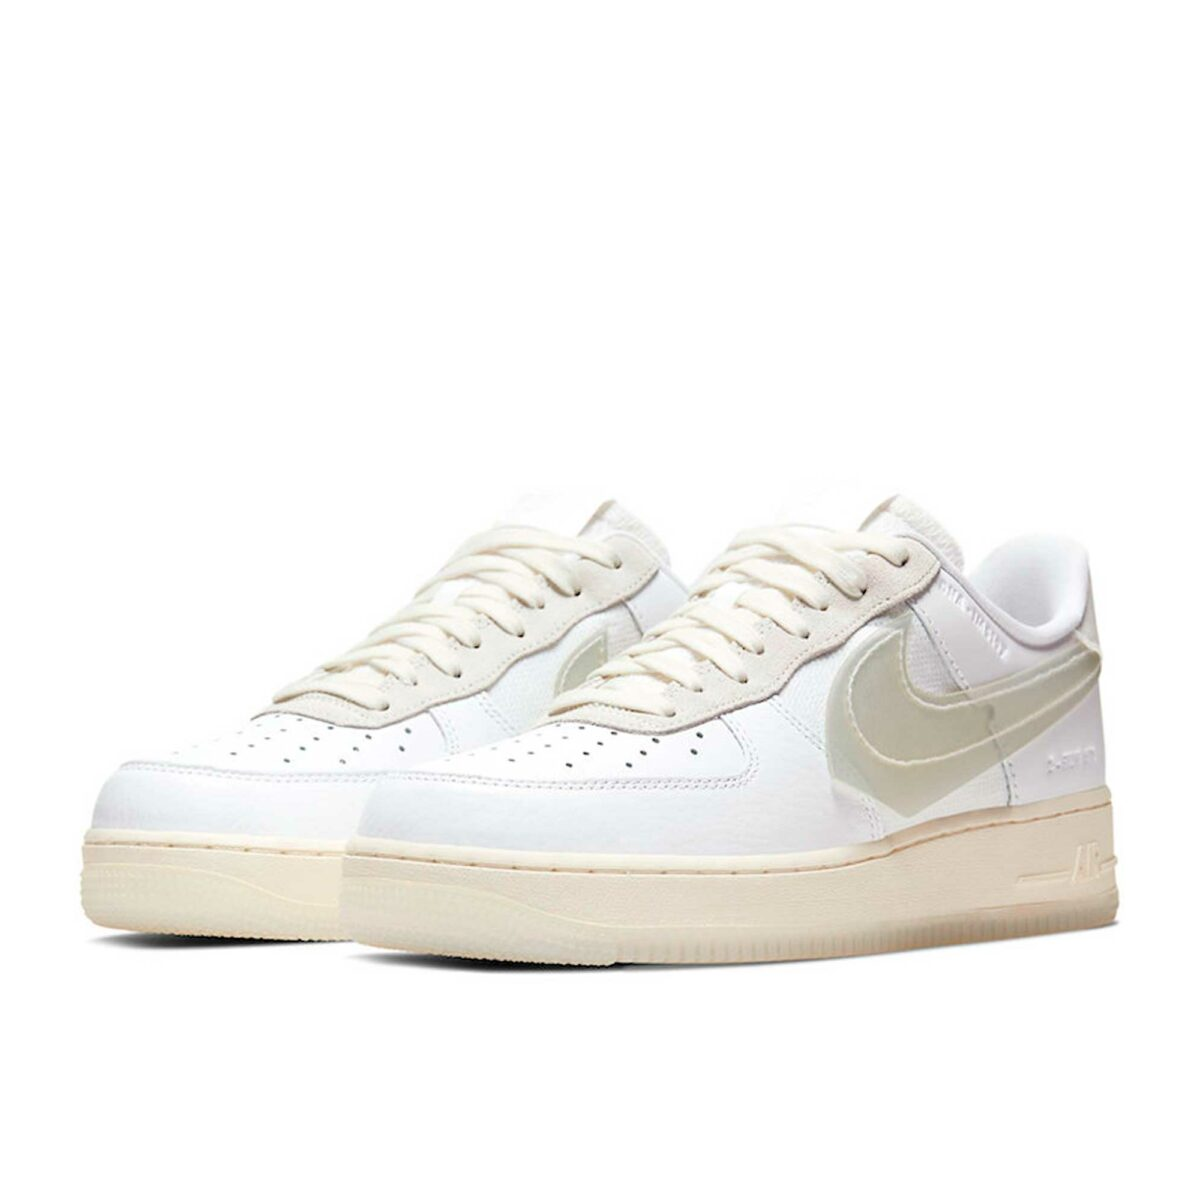 Nike Air Force 1 Low Dna White CV3040_100 купить